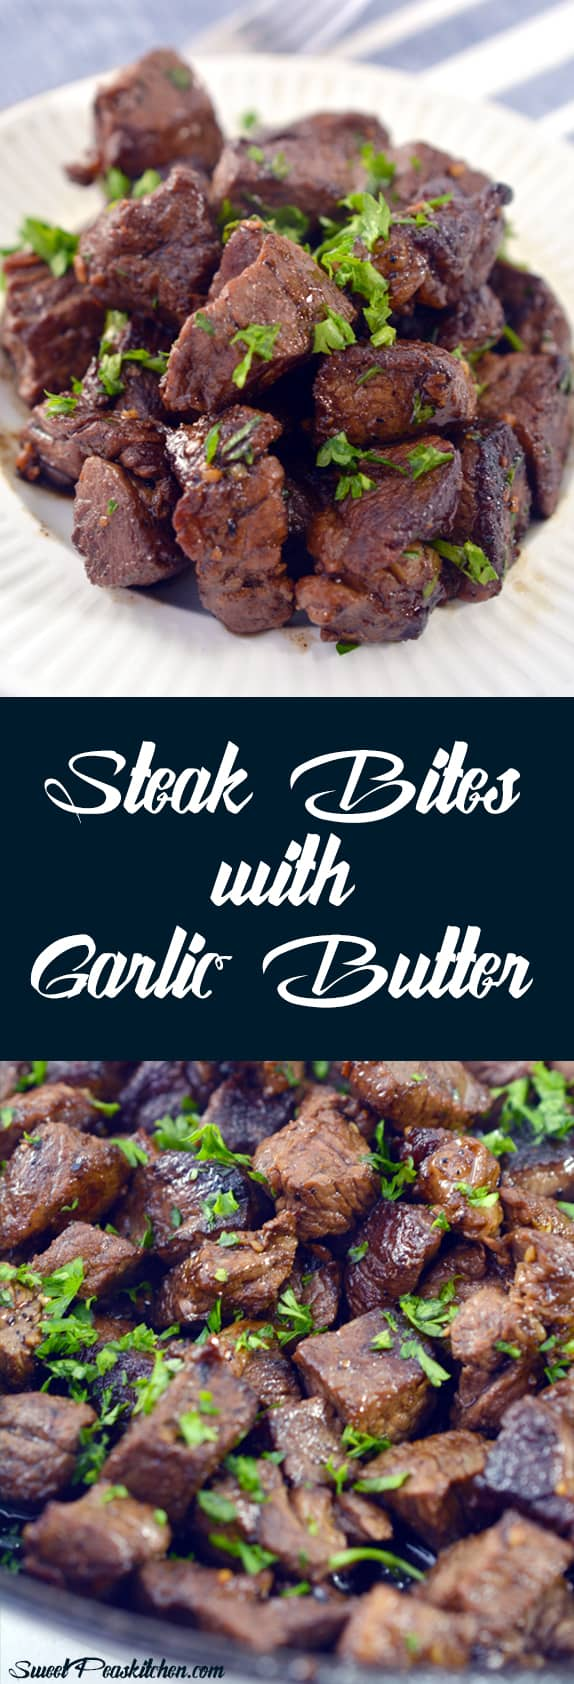 Steak Bites with Garlic Butter